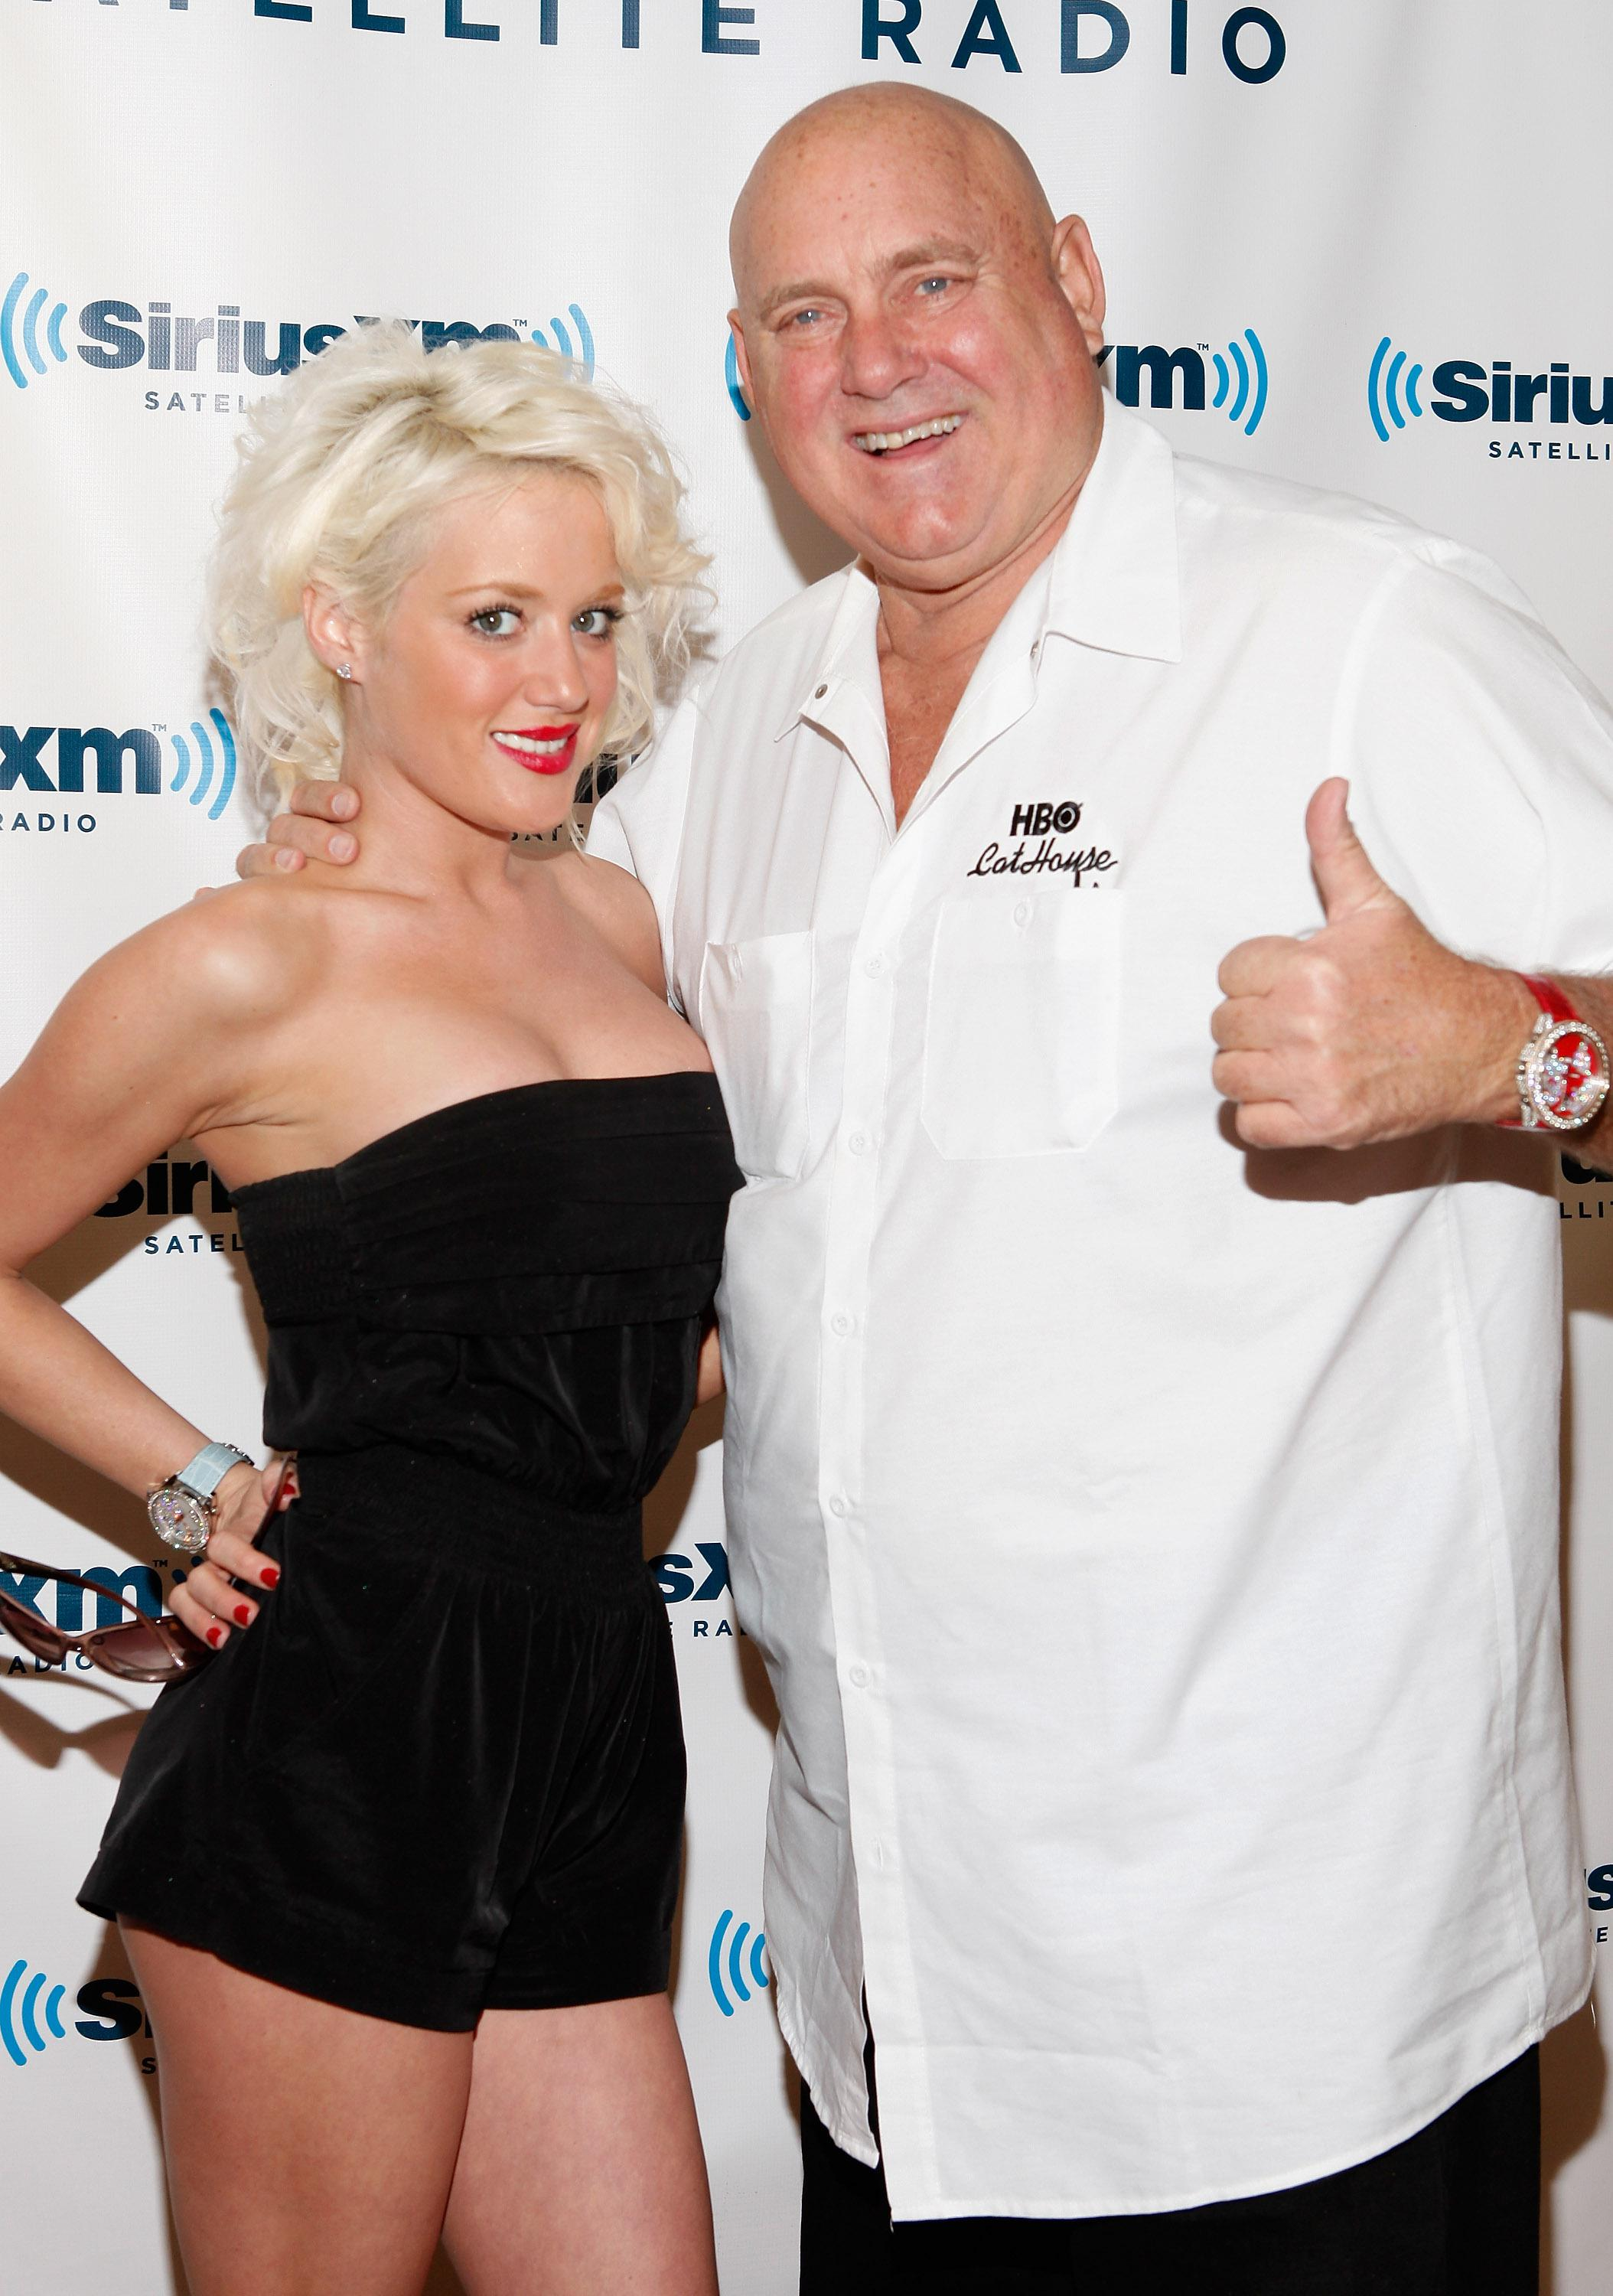 Cami Parker and Bunny Ranch founder Dennis Hof in 2011.